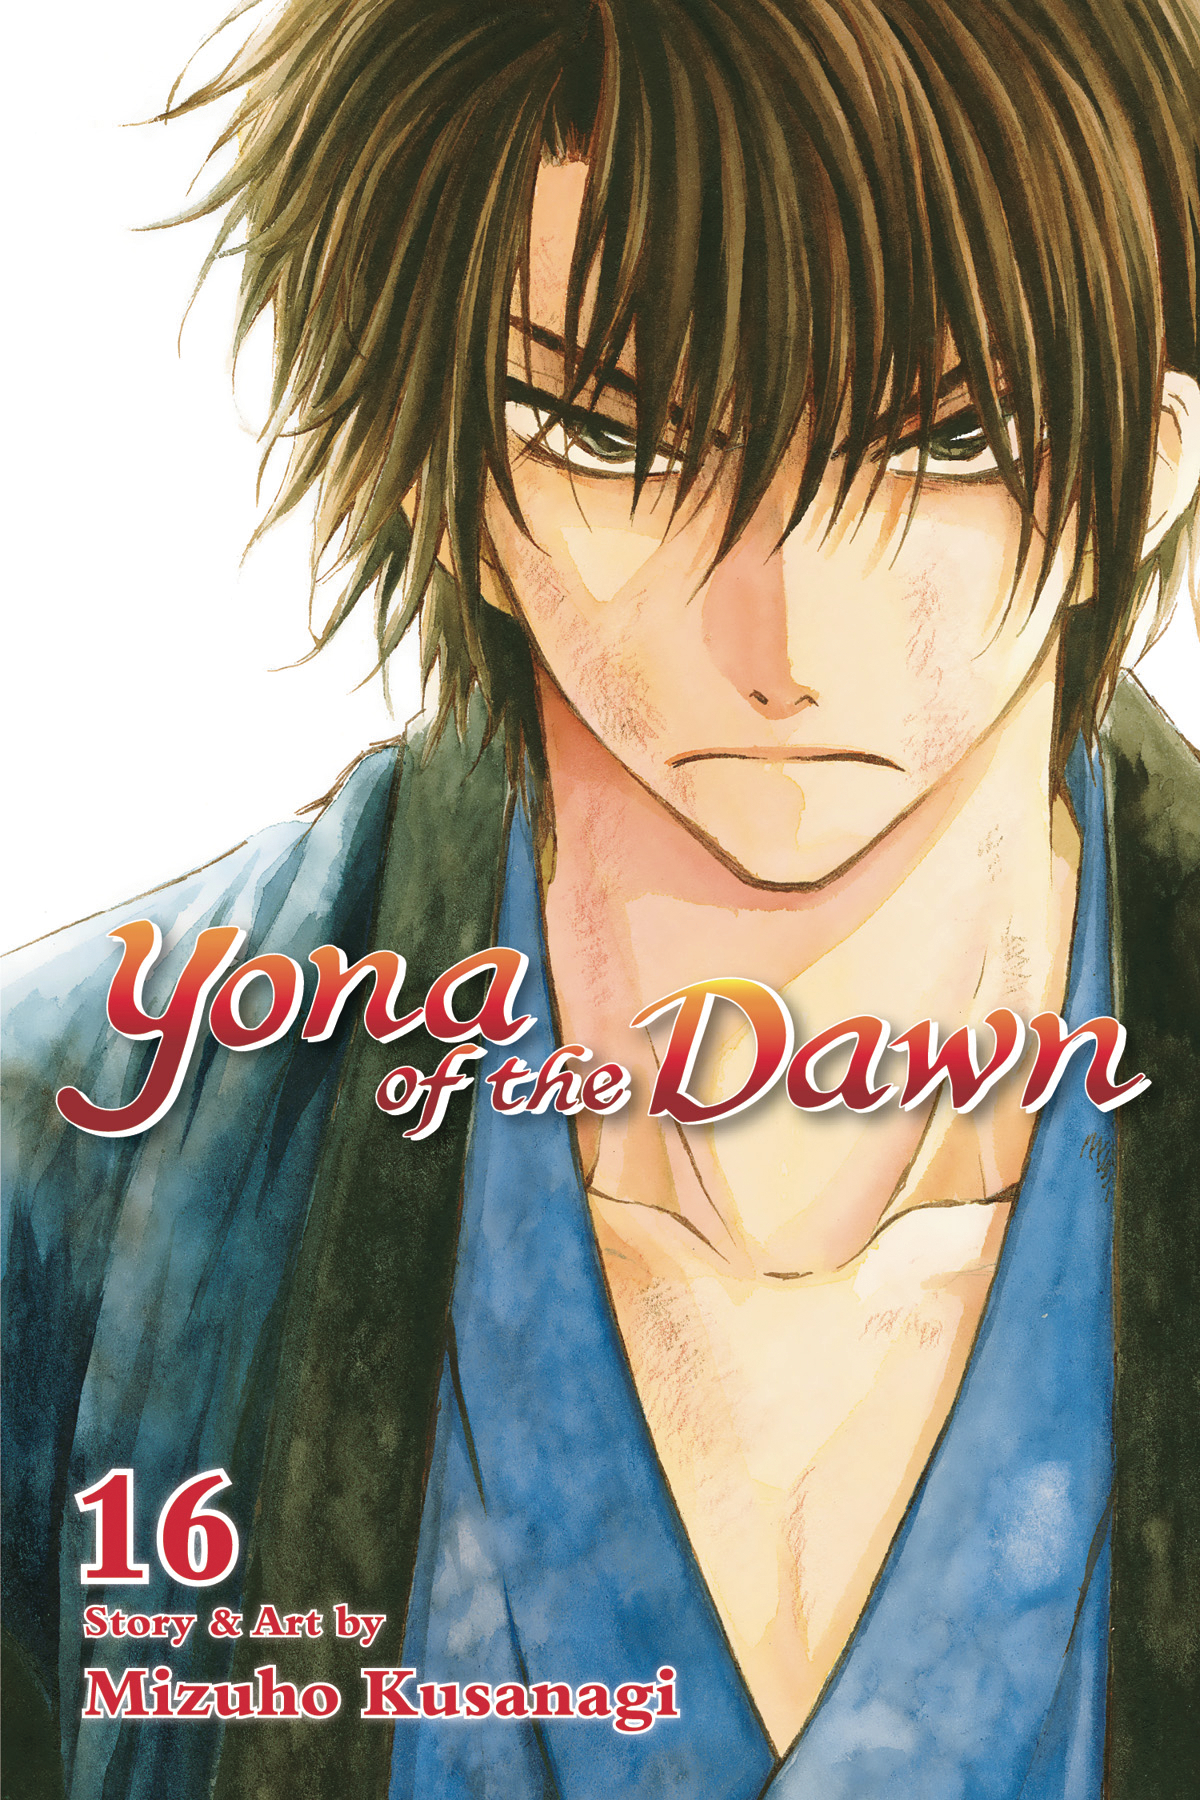 YONA OF THE DAWN GN VOL 16